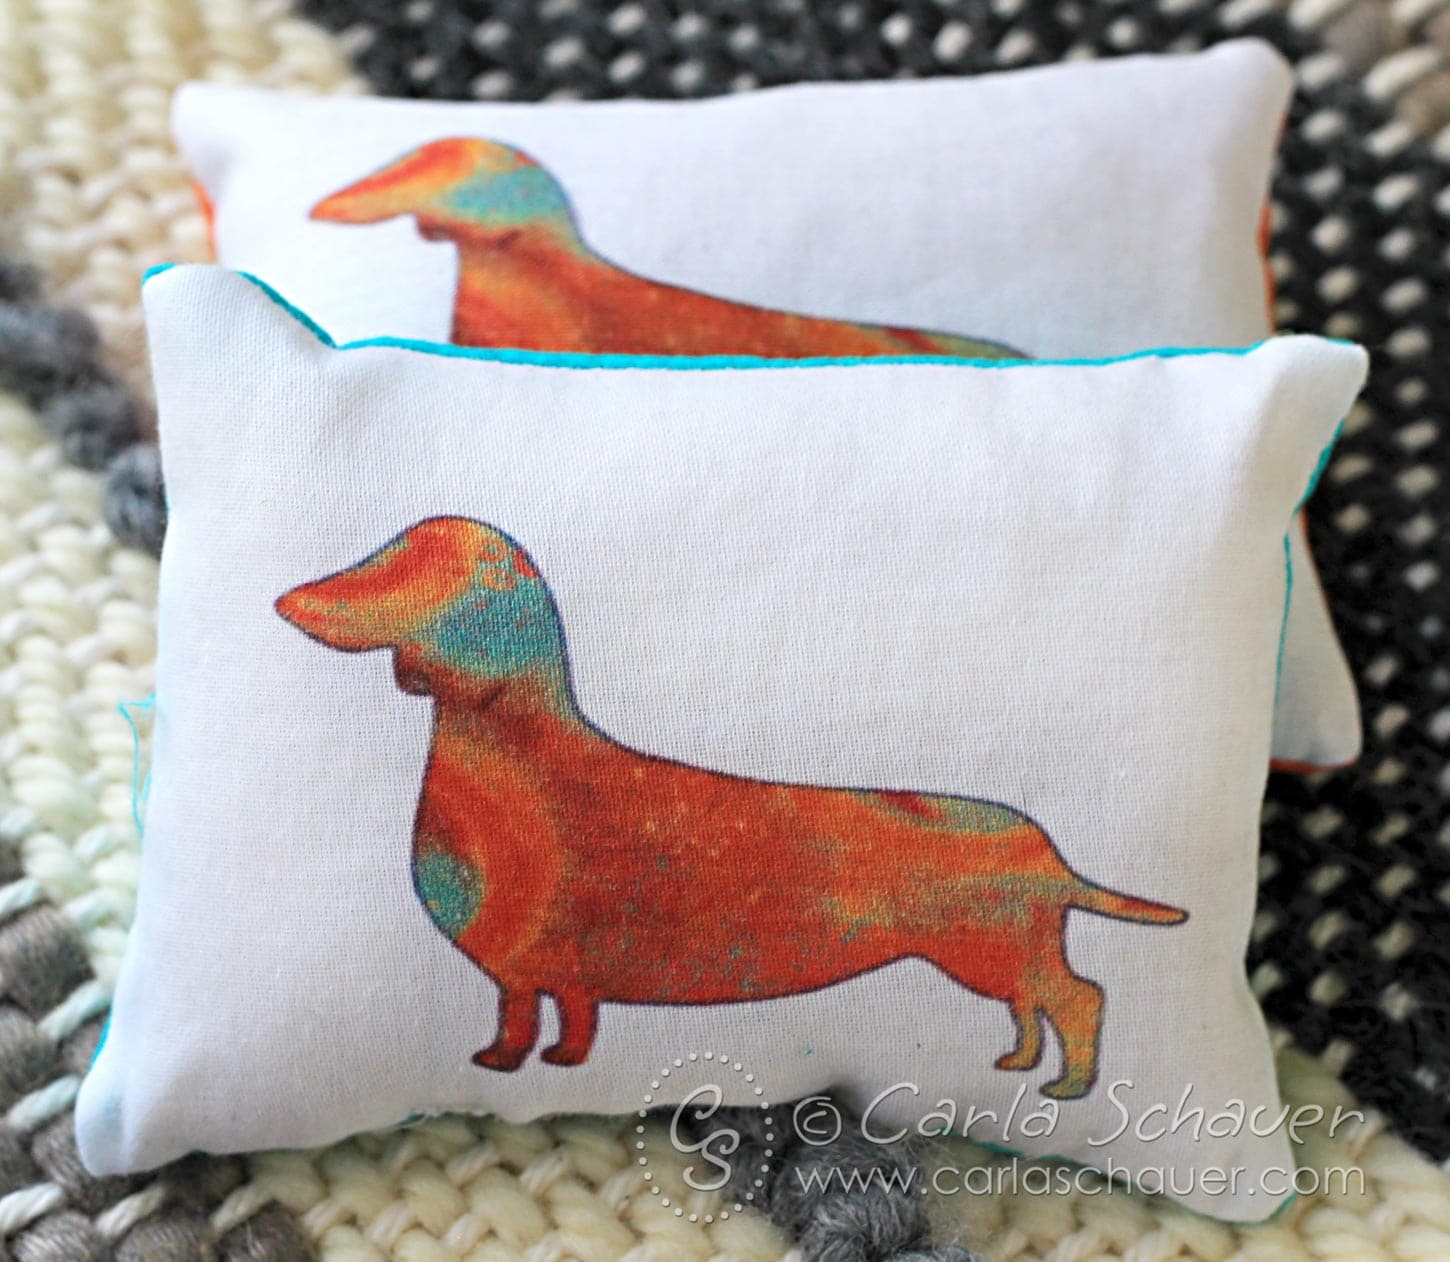 So cute! These would make an adorable teacher gift! Quirky Weinerdog reusable pocket hand warmers. | Carla Schauer Designs